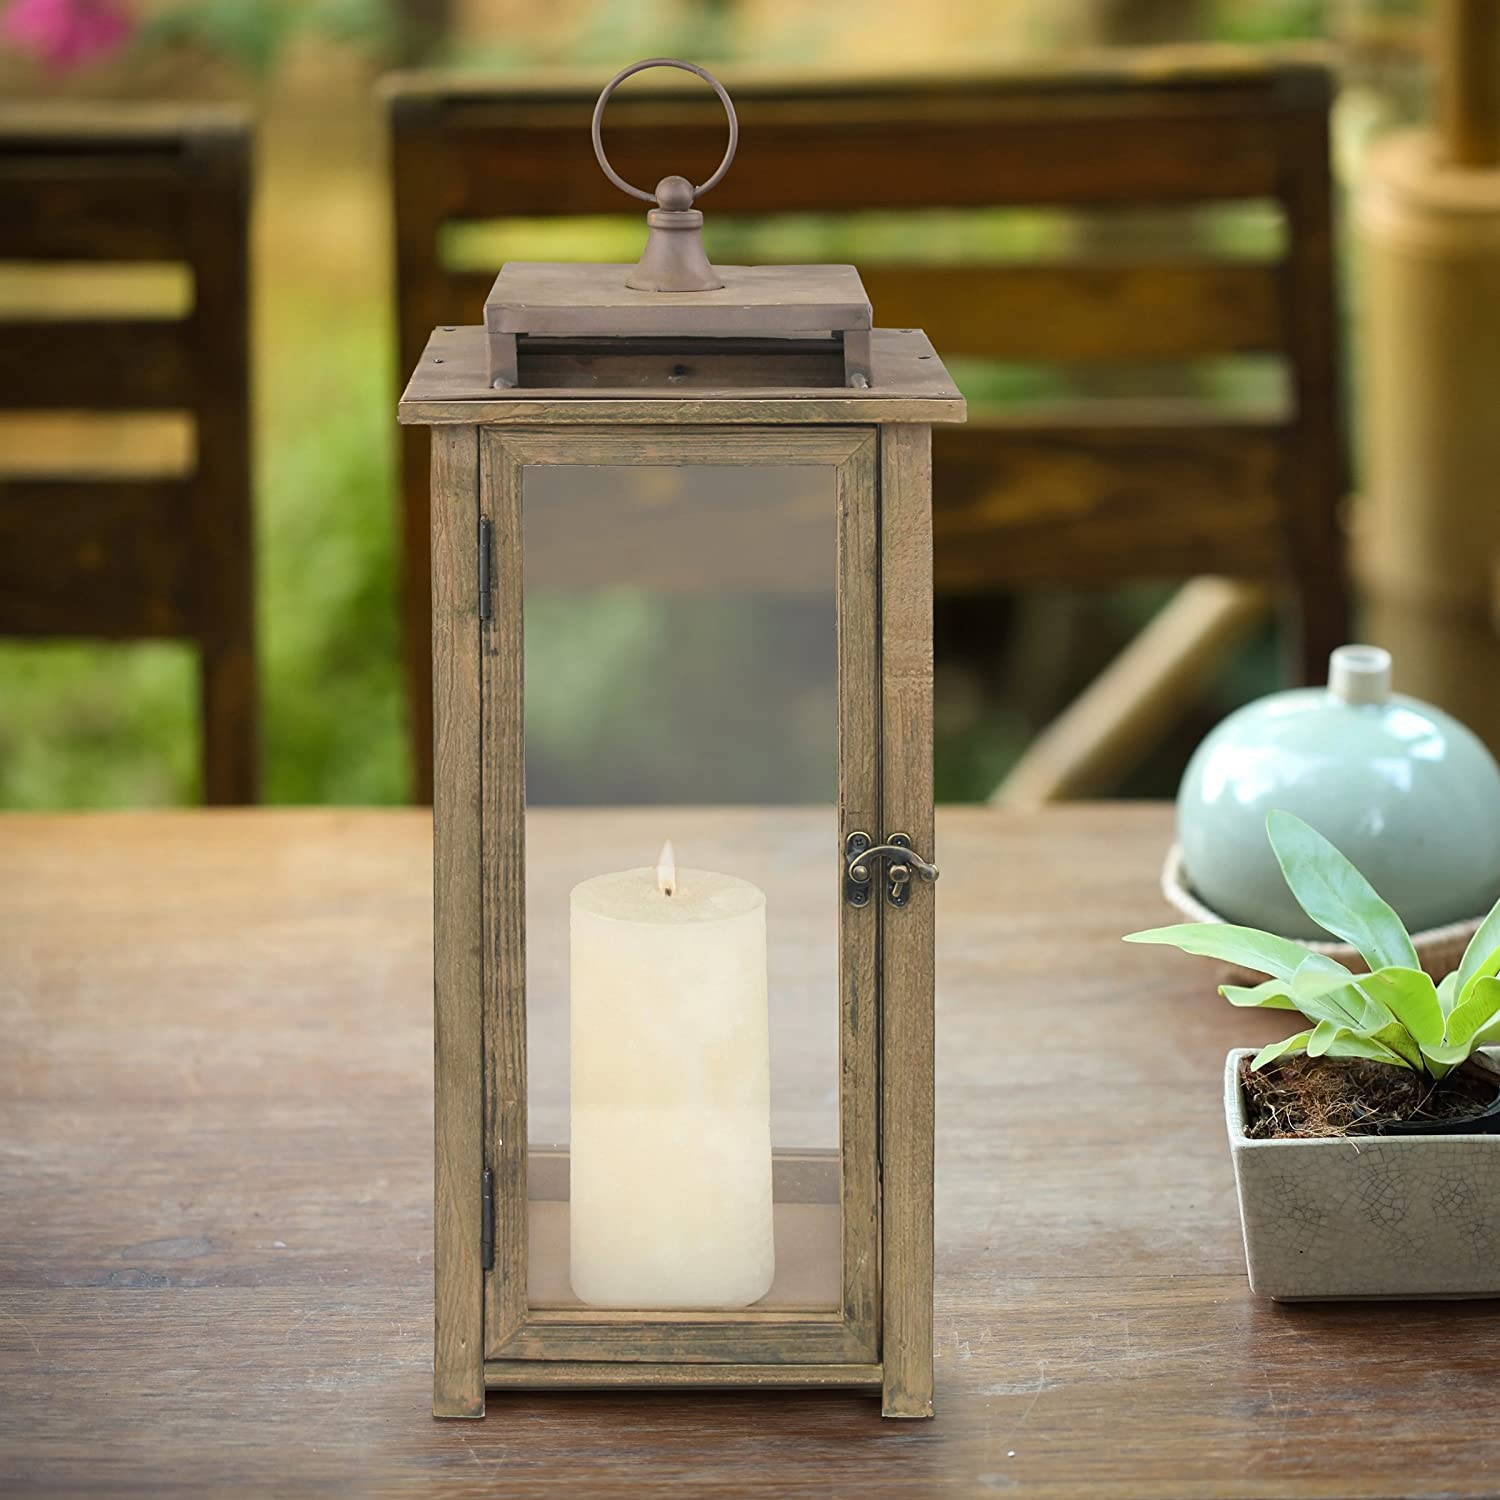 Mantle Extra Large CKK Home Decor SB-5174C or Garden Display Indoor /& Outdoor Use For Table Top Stonebriar 18 Inch Rustic Wooden Candle Hurricane Lantern Wall Hanging